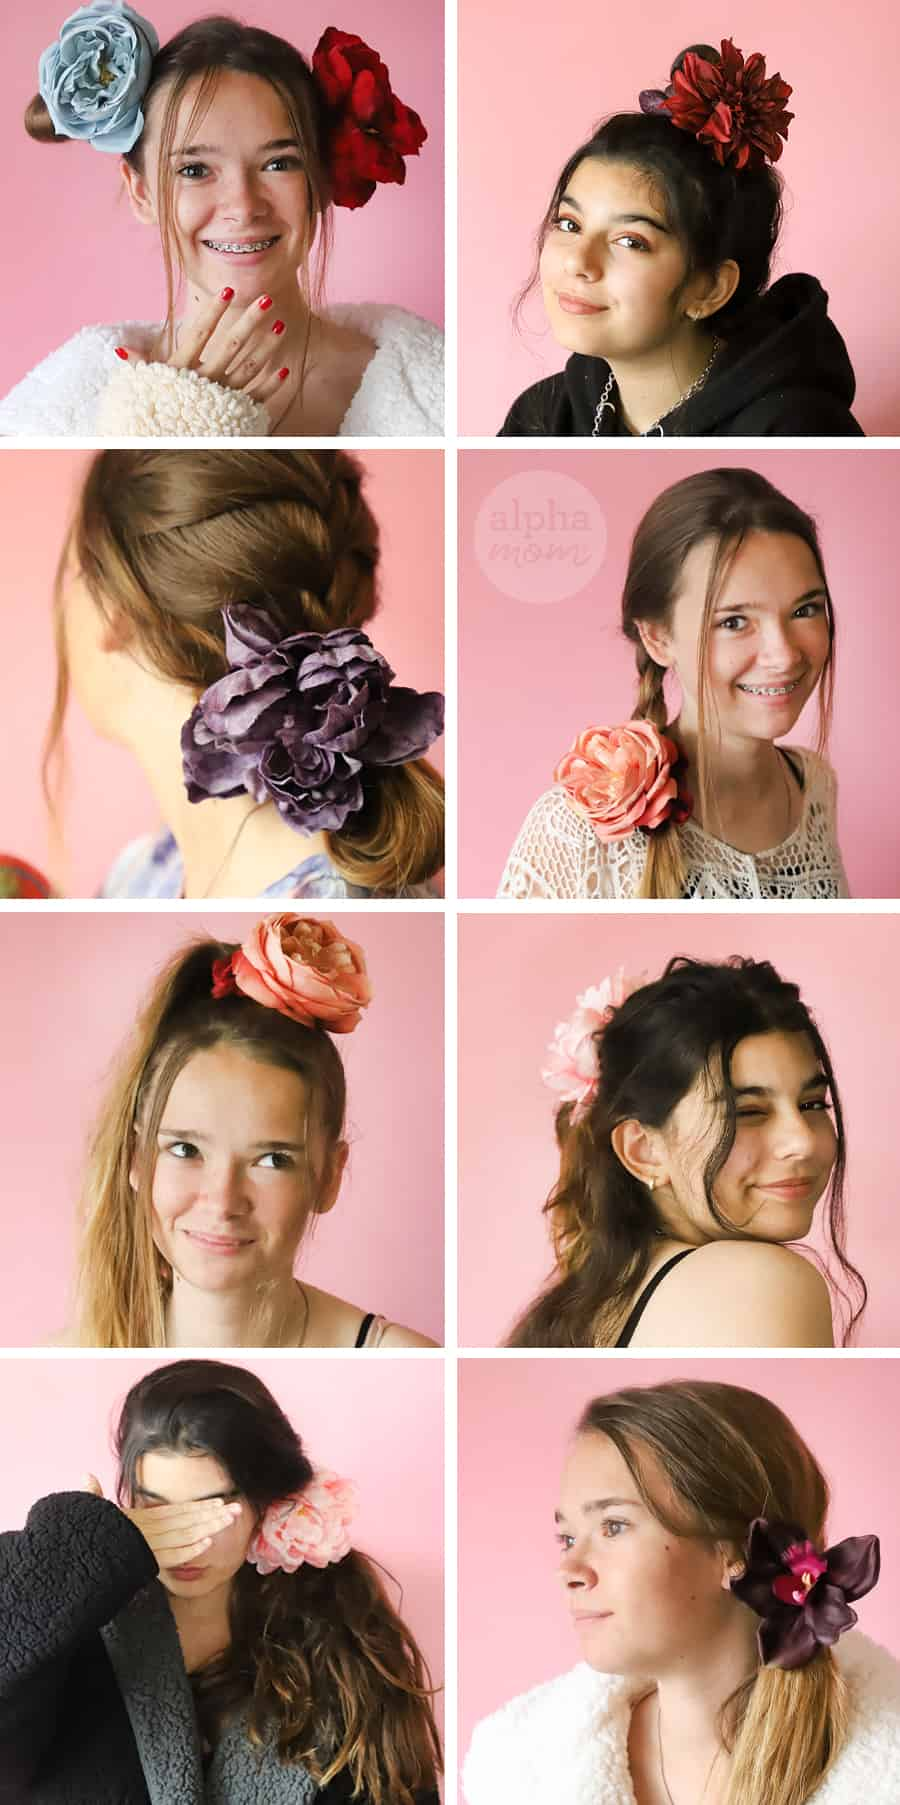 eight photos of two teen girls modeling different hairstyles they made using flower scrunchies